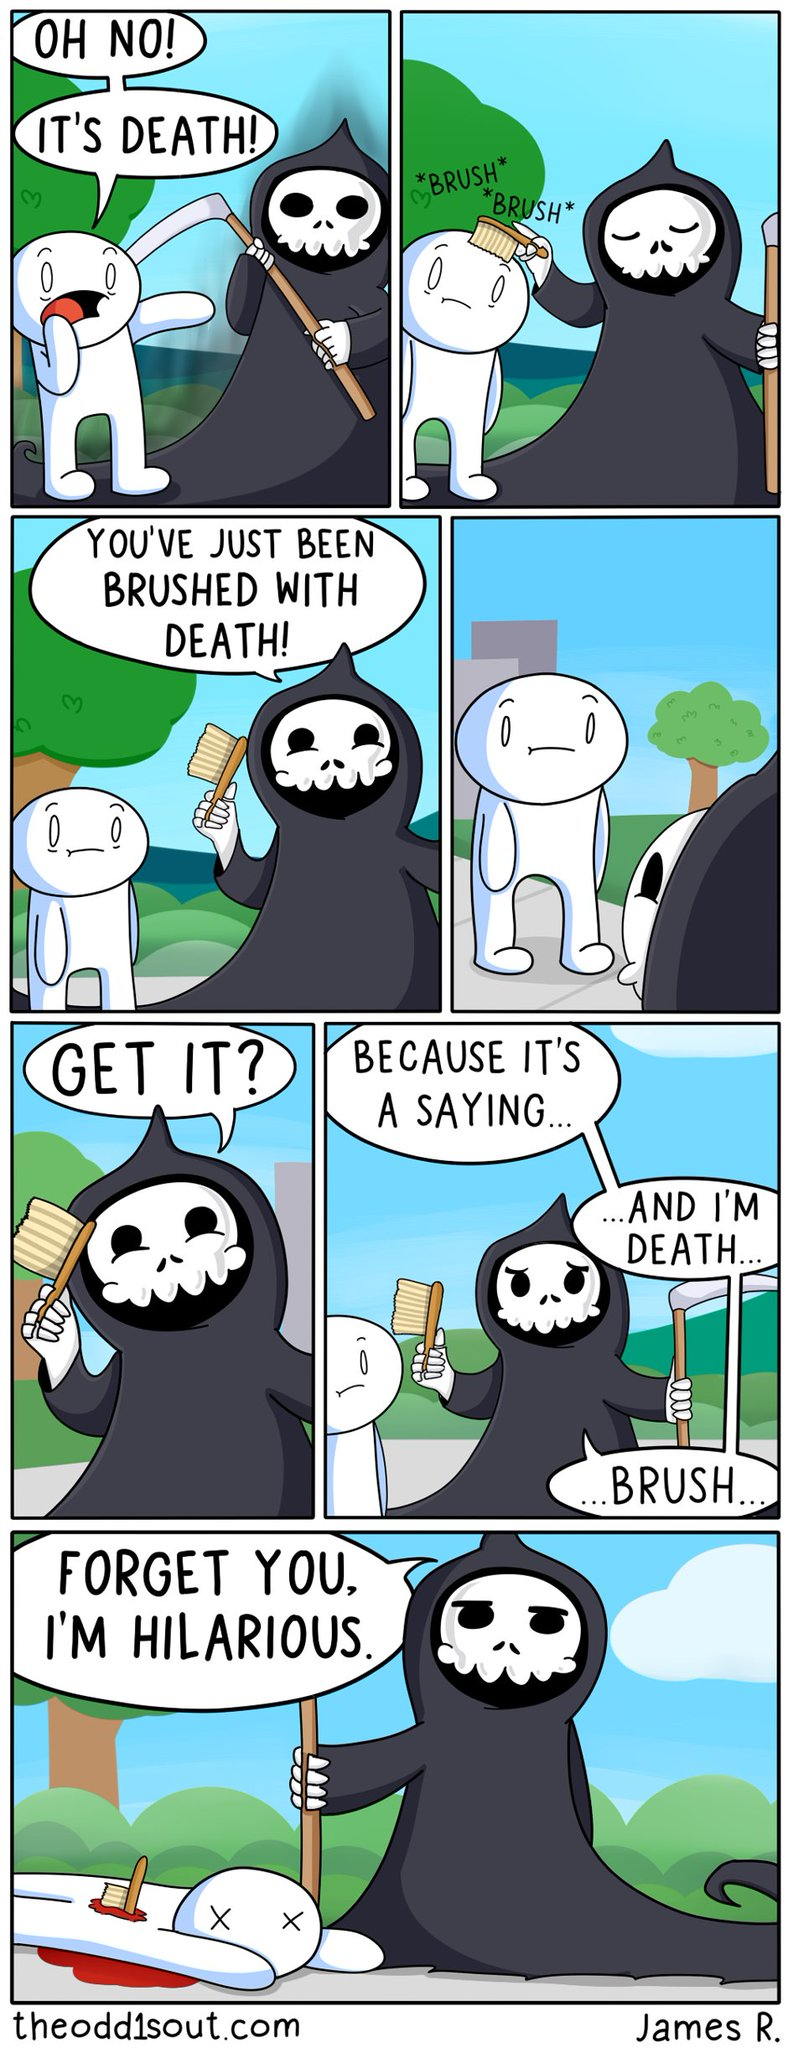 Theodd1sout On Twitter Quot New Comic Quot Brushed By Death Quot